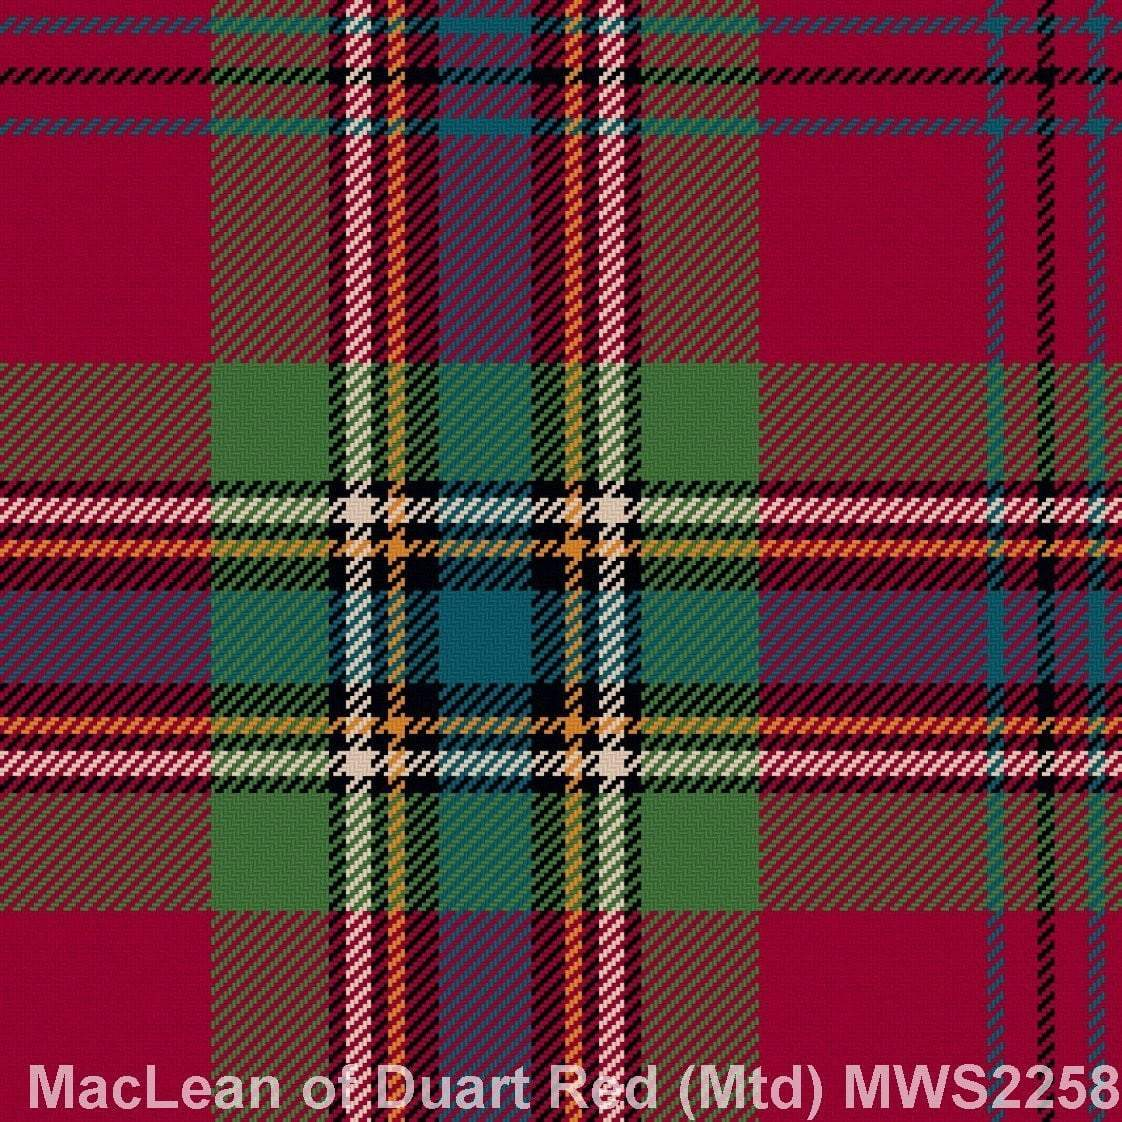 MacLean of Duart Red Muted